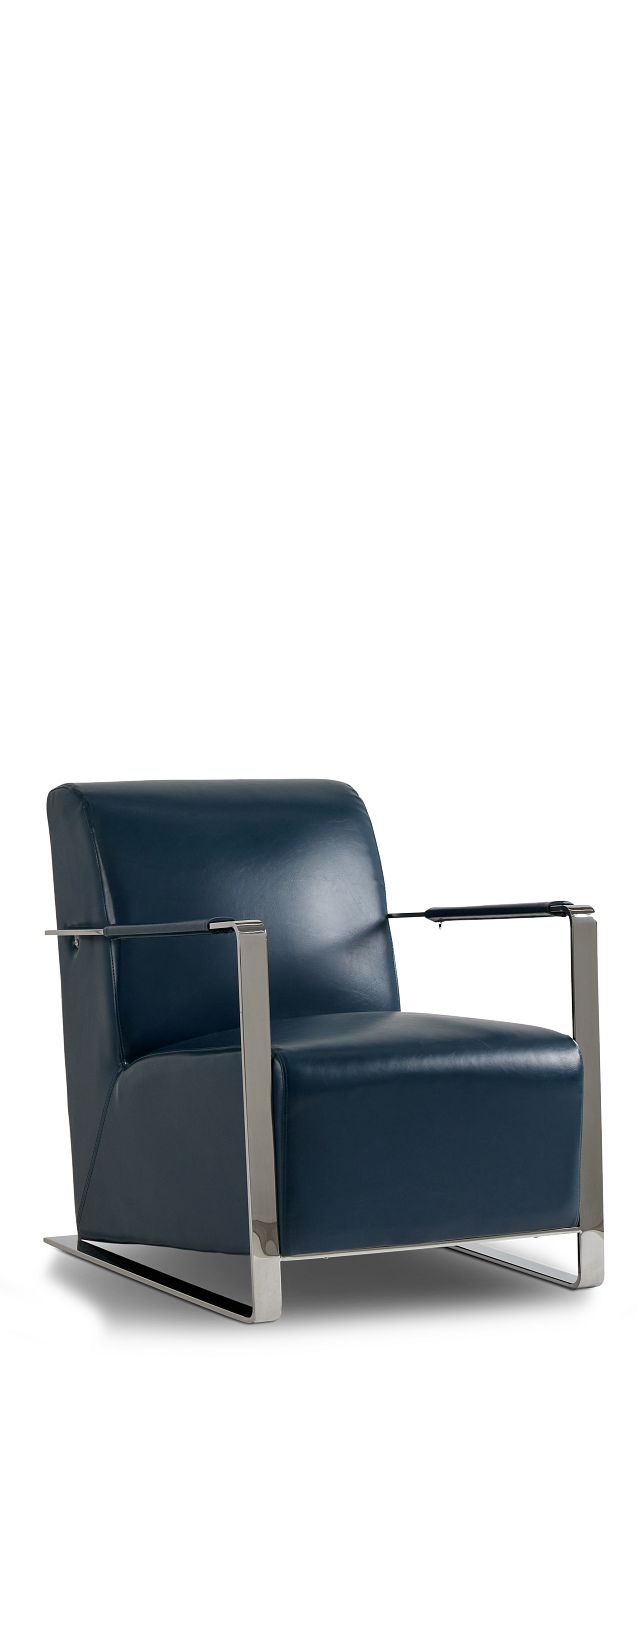 Lee Blue Uph Accent Chair (1)